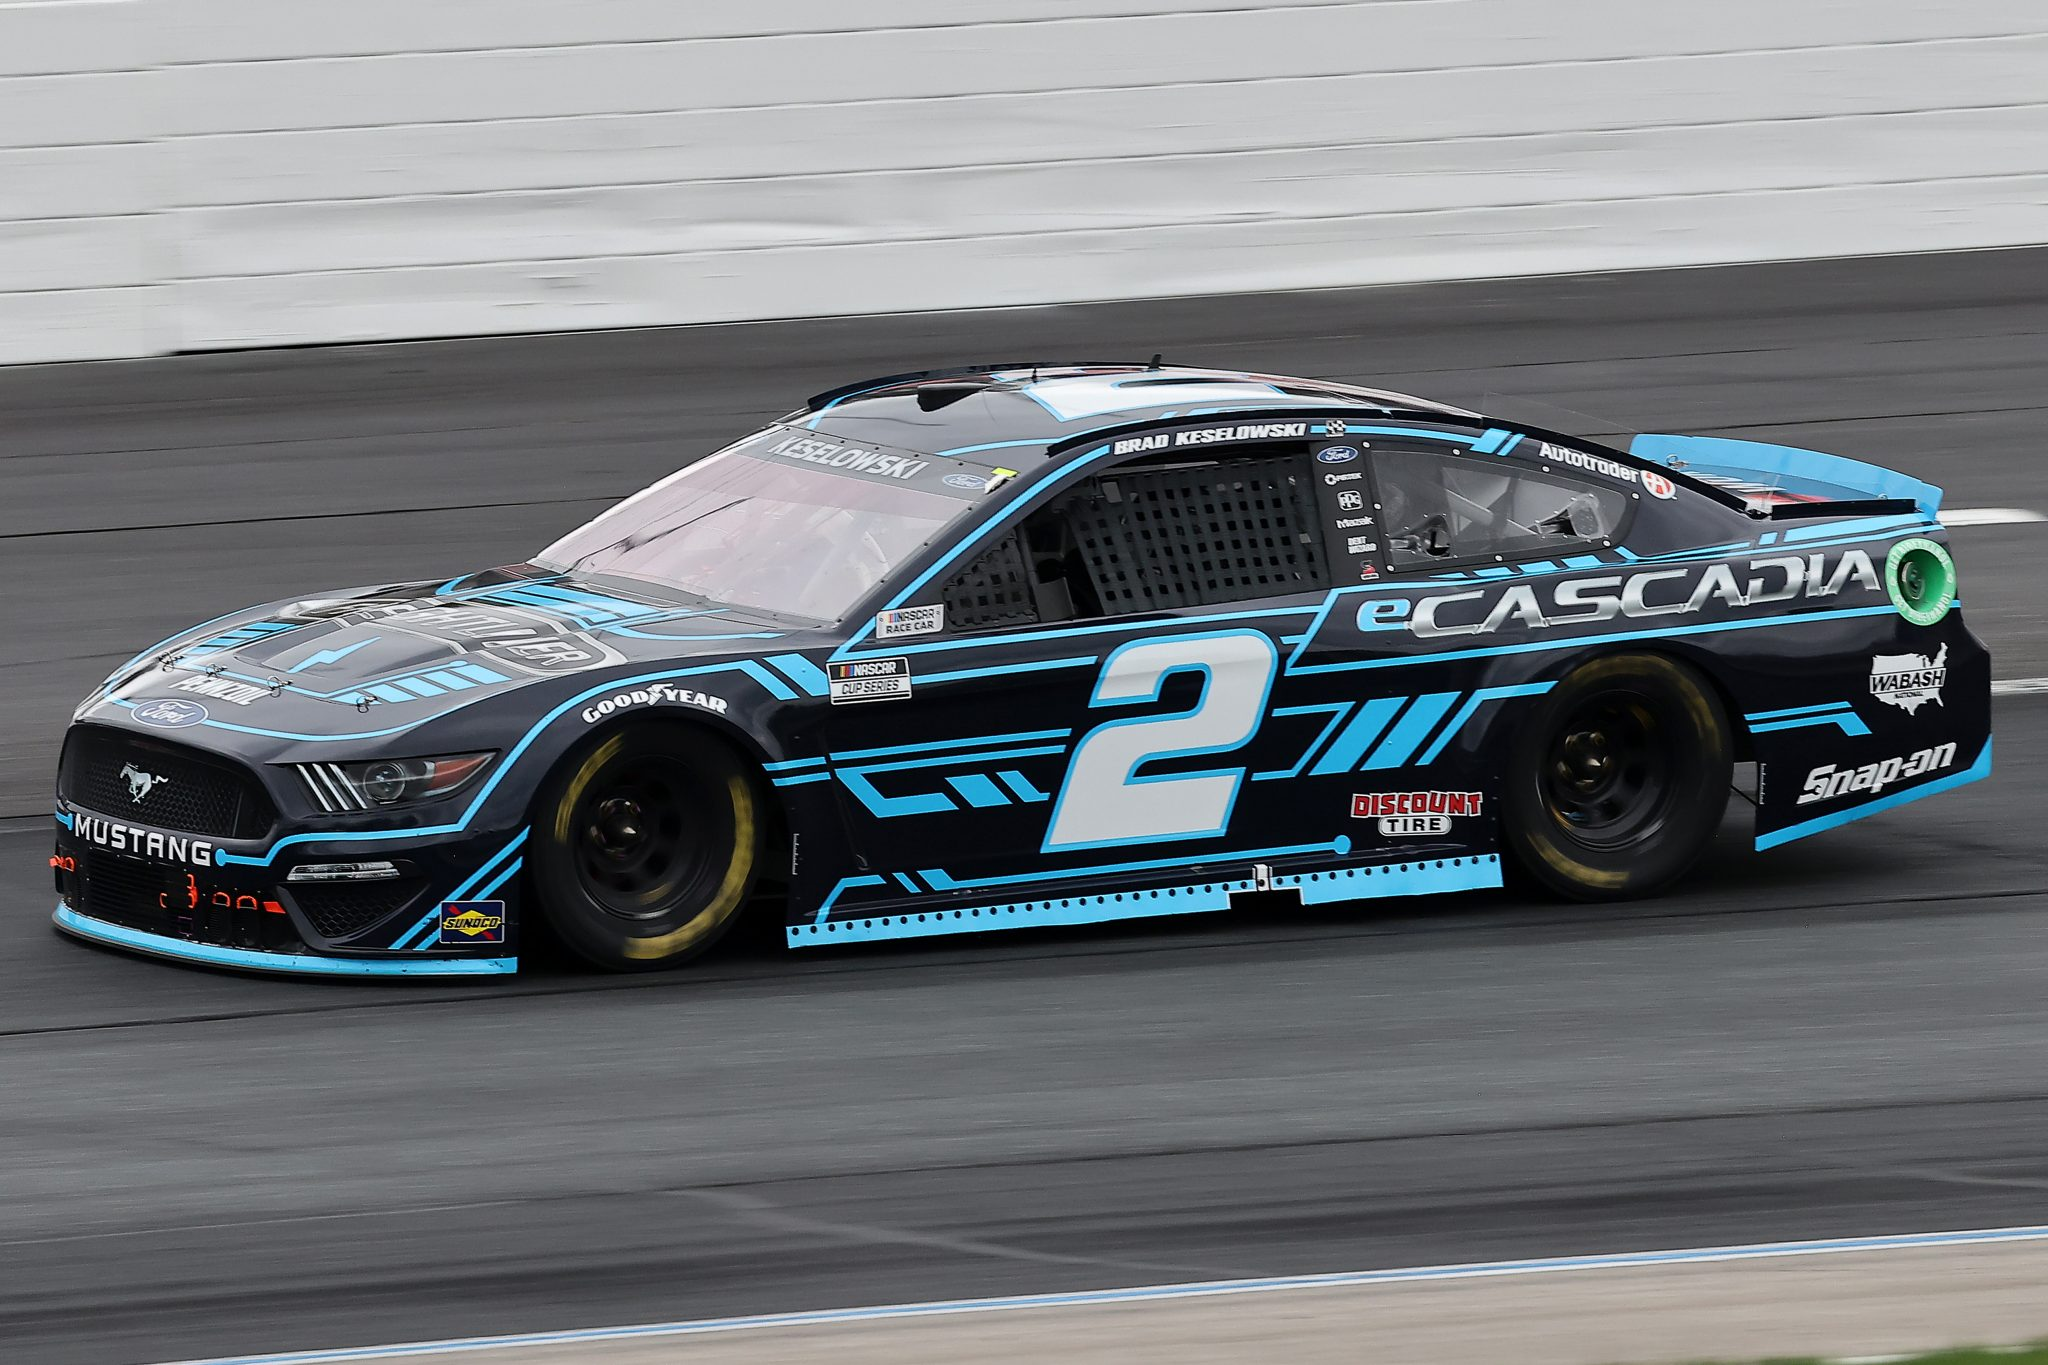 LOUDON, NEW HAMPSHIRE - JULY 18: Brad Keselowski, driver of the #2 eCascadia Ford, drives during the NASCAR Cup Series Foxwoods Resort Casino 301 at New Hampshire Motor Speedway on July 18, 2021 in Loudon, New Hampshire. (Photo by James Gilbert/Getty Images)   Getty Images